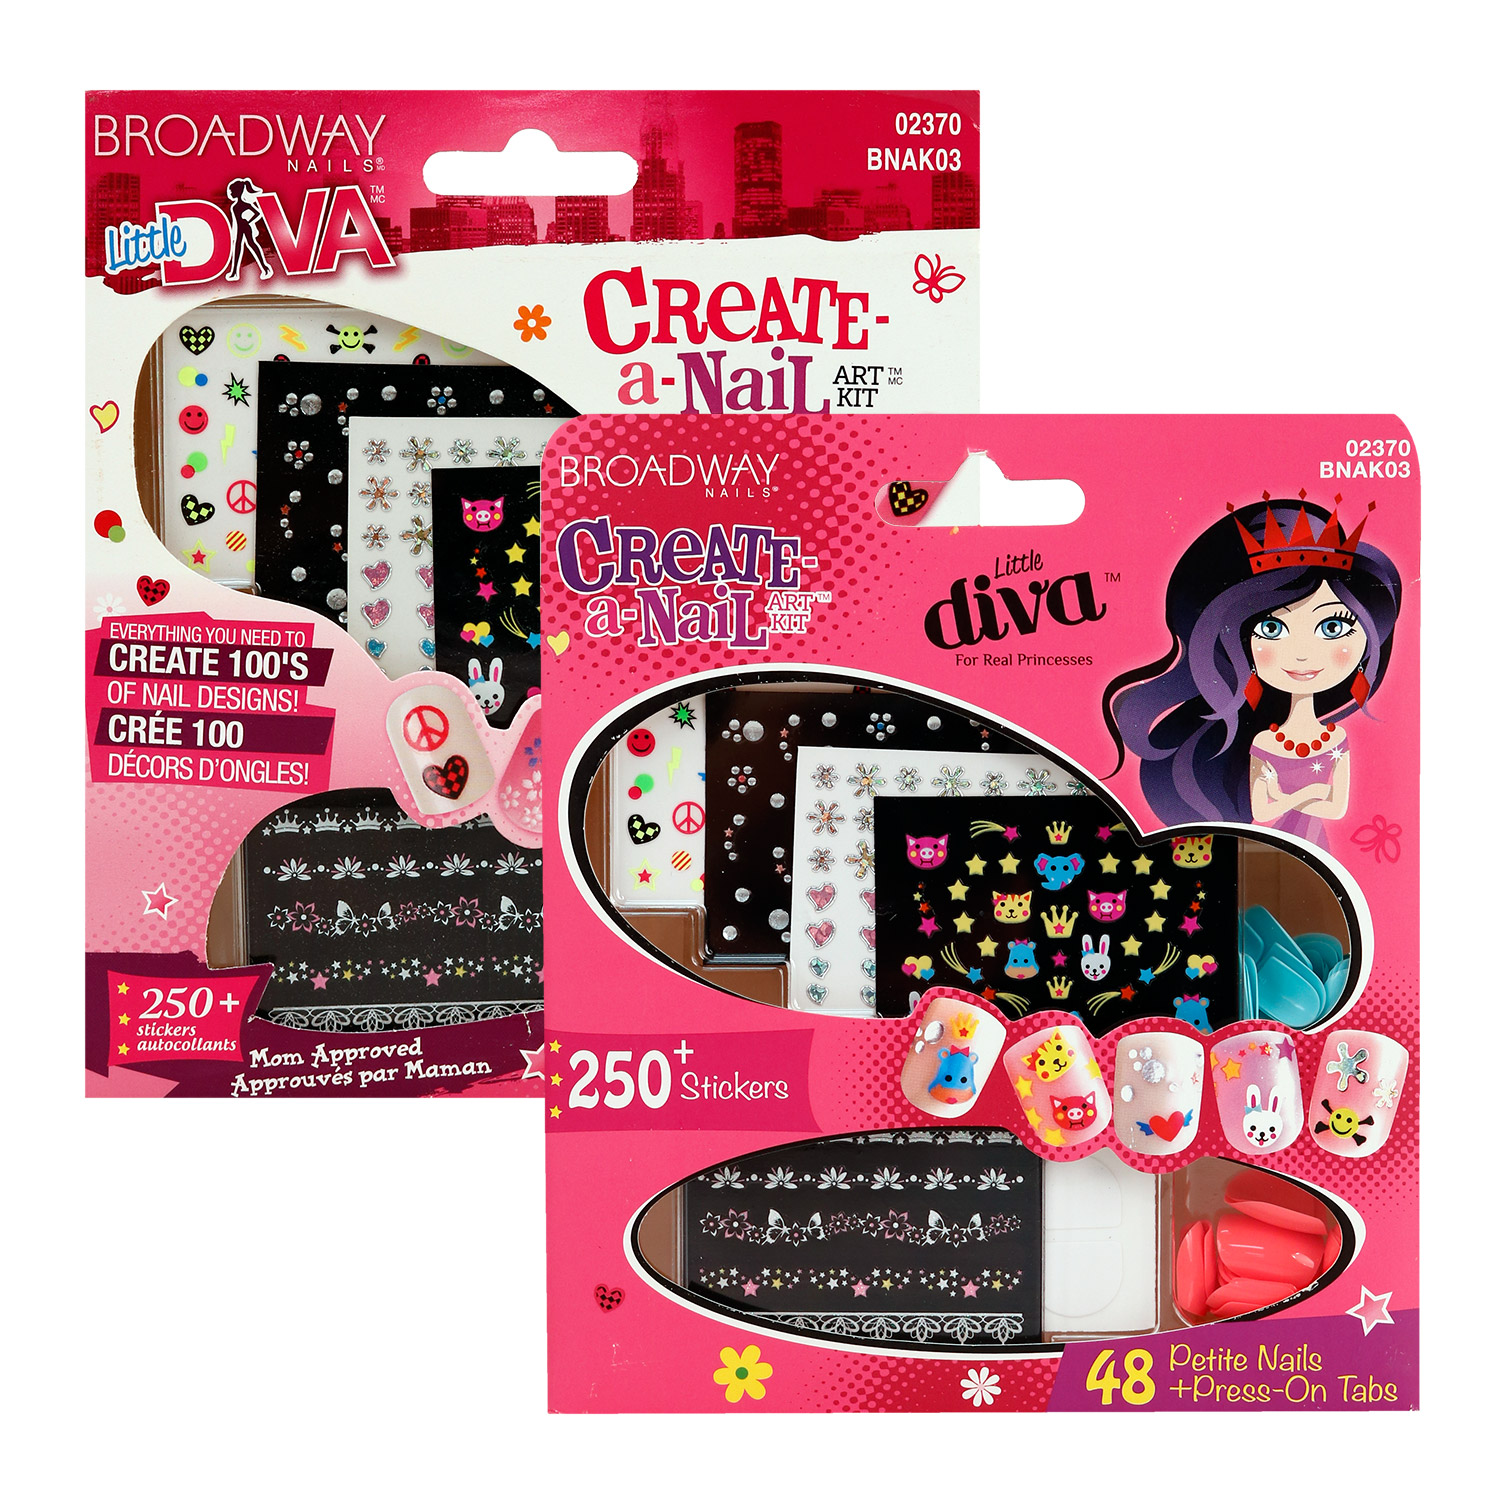 Broadway Little Diva Create-A-Nail Art Kit 48 Nails - Ikatehouse